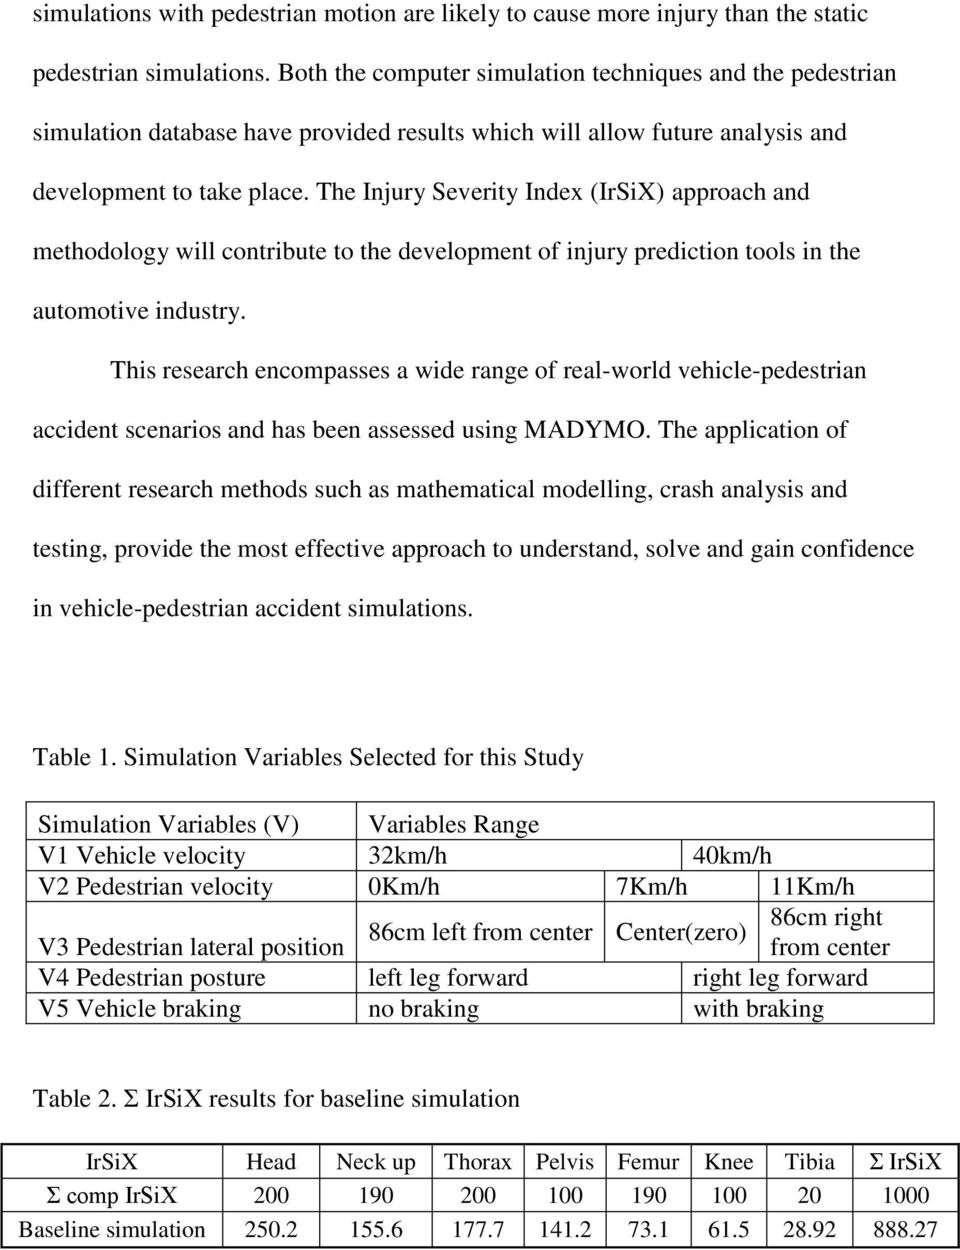 The Injury Severity Index (IrSiX) approach and methodology will contribute to the development of injury prediction tools in the automotive industry.